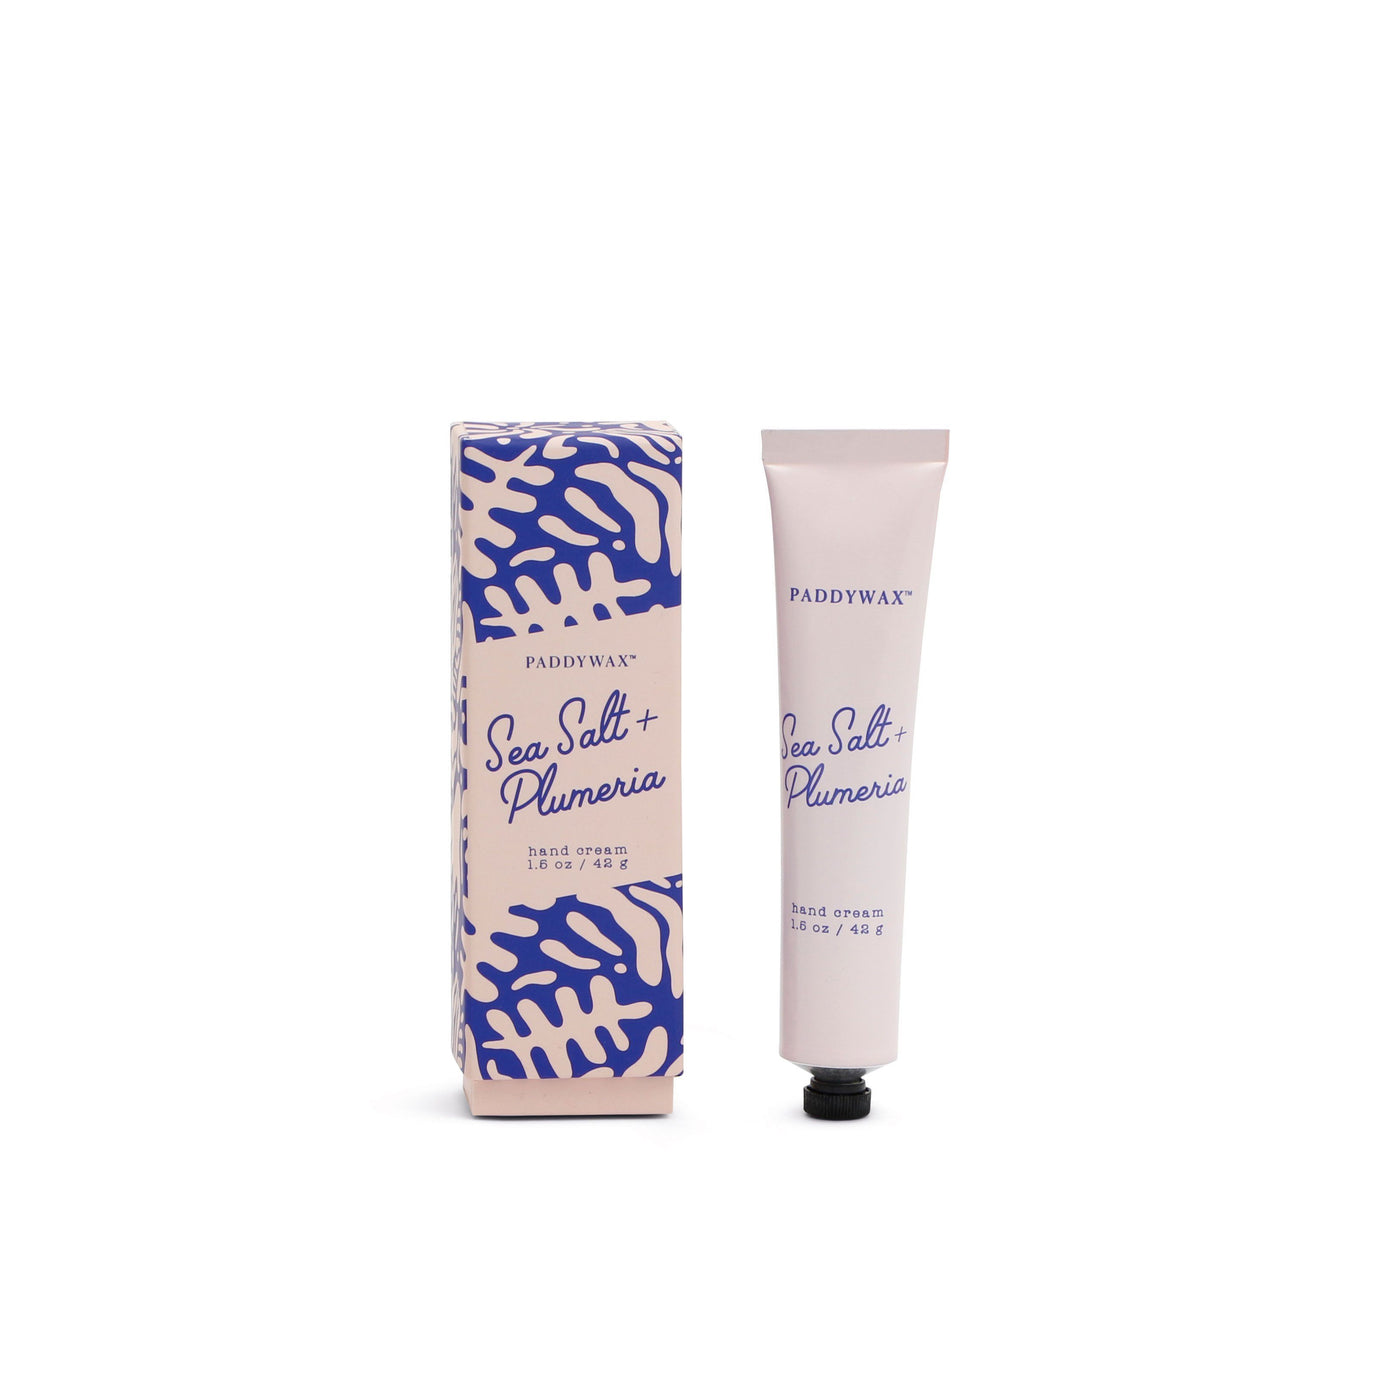 Hand Cream - Sea Salt & Plumeria Paddywax Lotion & Moisturizer